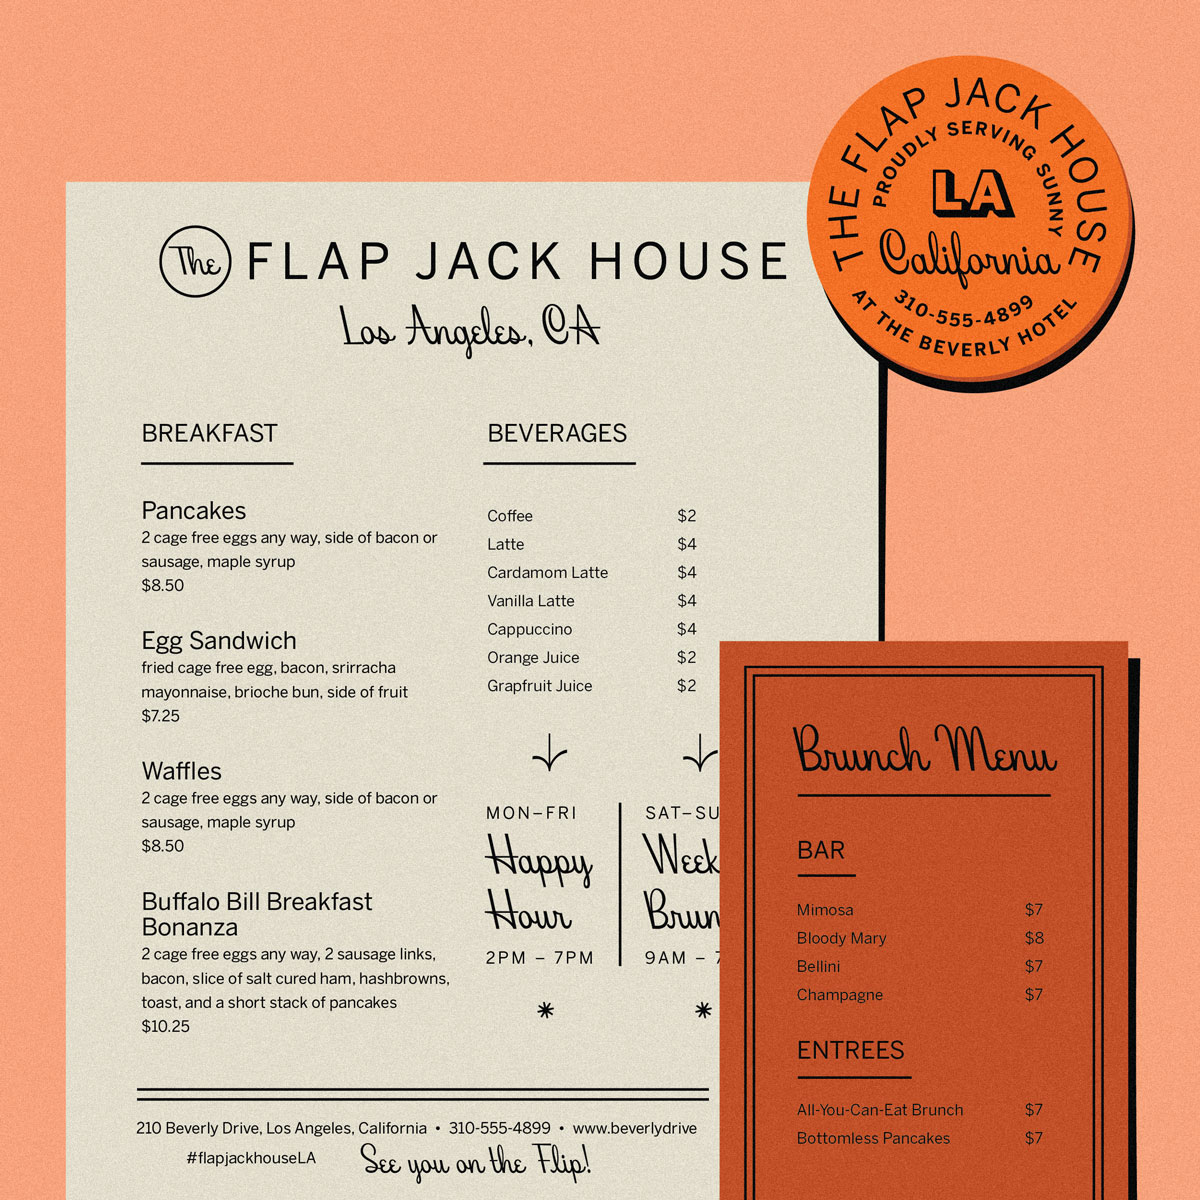 Faux menu using Beverly Drive and retro colors